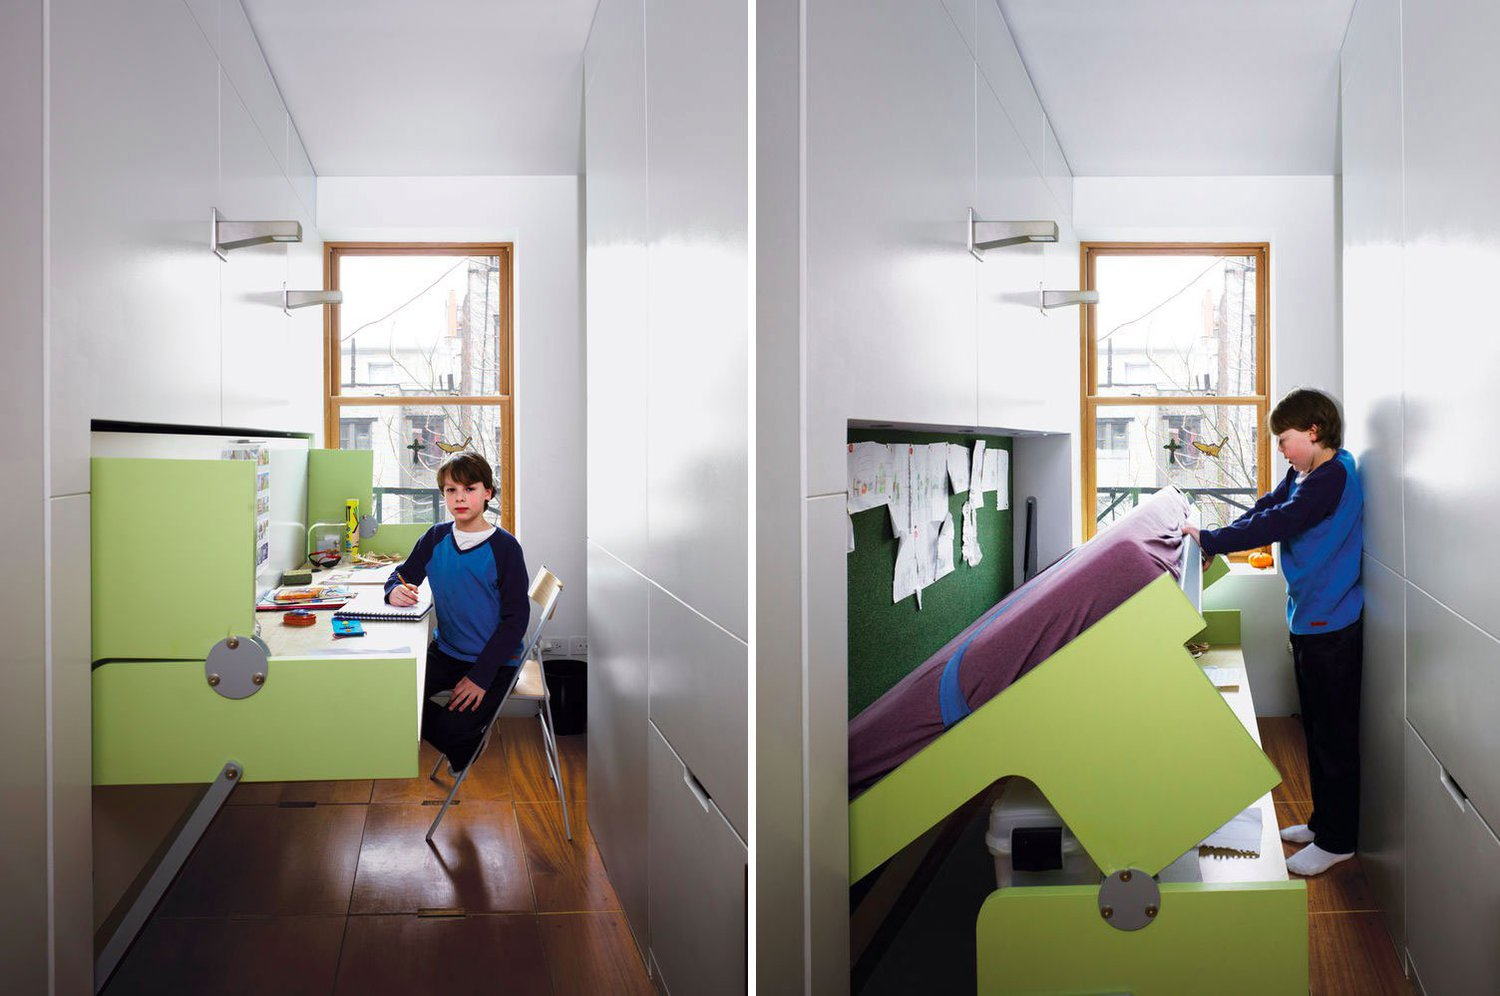 Having a home office in an apartment of this size might seem impossible, but flexible furniture transforms one room into two. All it takes is gentle downward pressure to lower the desk to the floor, bringing the kid-size mattress into position for bedtime.